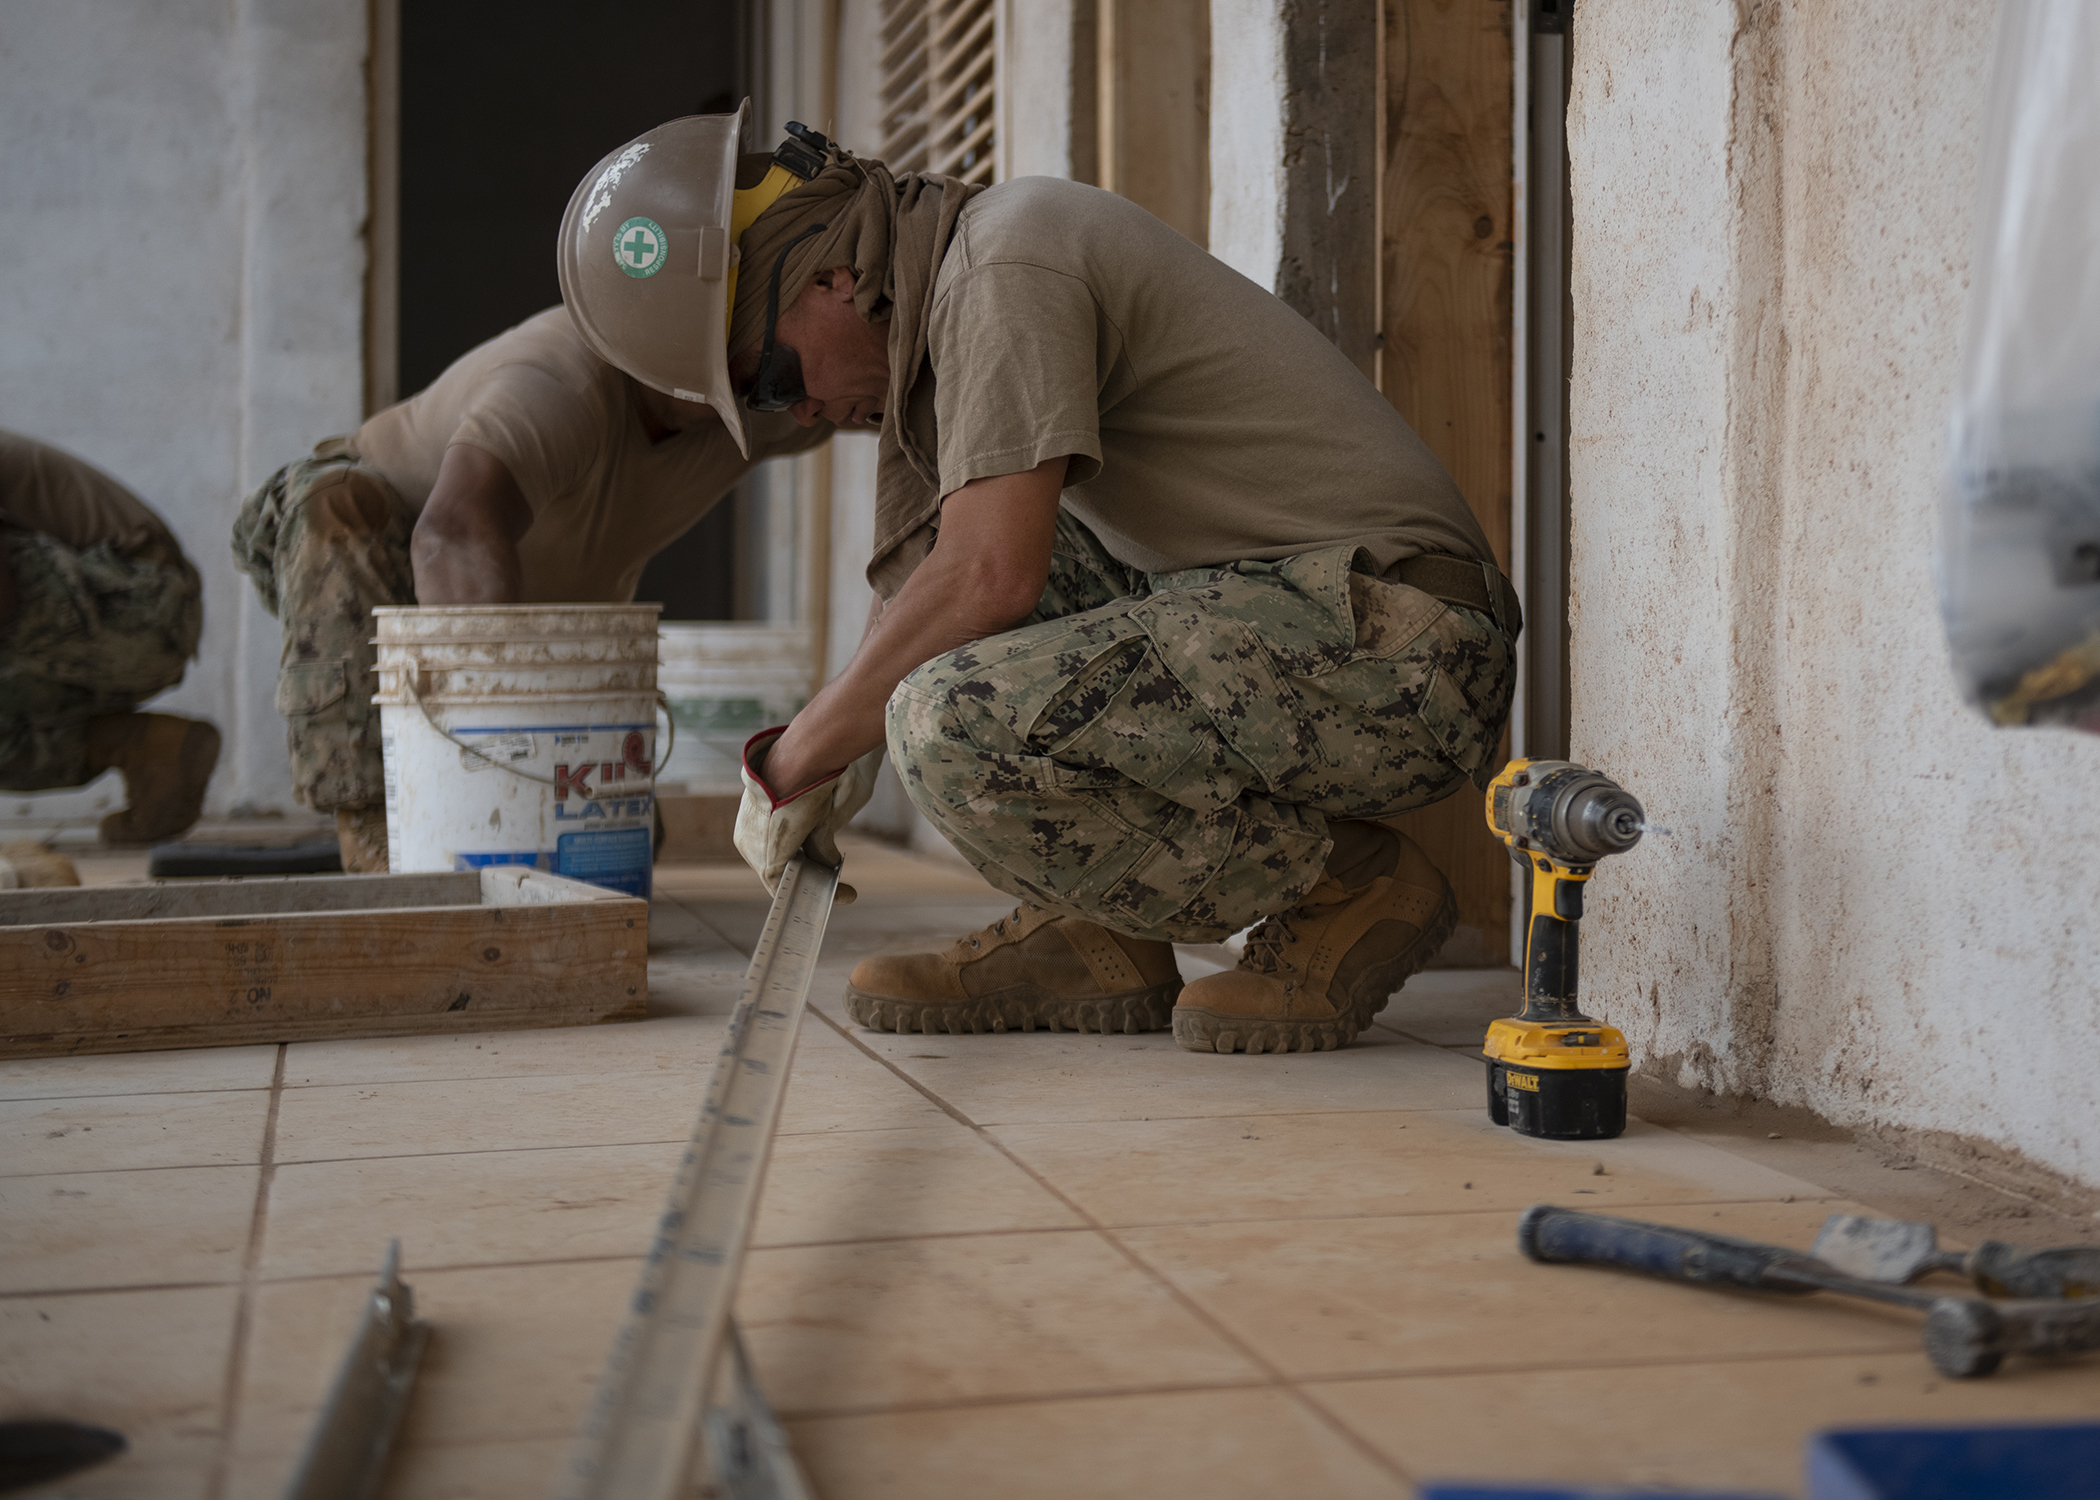 A U.S. Navy Seabee assigned to Naval Mobile Construction Battalion 1, Combined Joint Task Force-Horn of Africa, Camp Lemonnier, Djibouti, works on a drop ceiling during the construction of the future Ali Oune, Djibouti, Women's Medical Clinic, Dec. 27, 2018. The clinic is intended to enhance the Ministry of Health for Djibouti's ability to provide basic medical, birth and after care to the Ali Oune village and its more than 1,000 residents and rural neighbors. (U.S. Air Force photo by Tech. Sgt. Shawn Nickel)